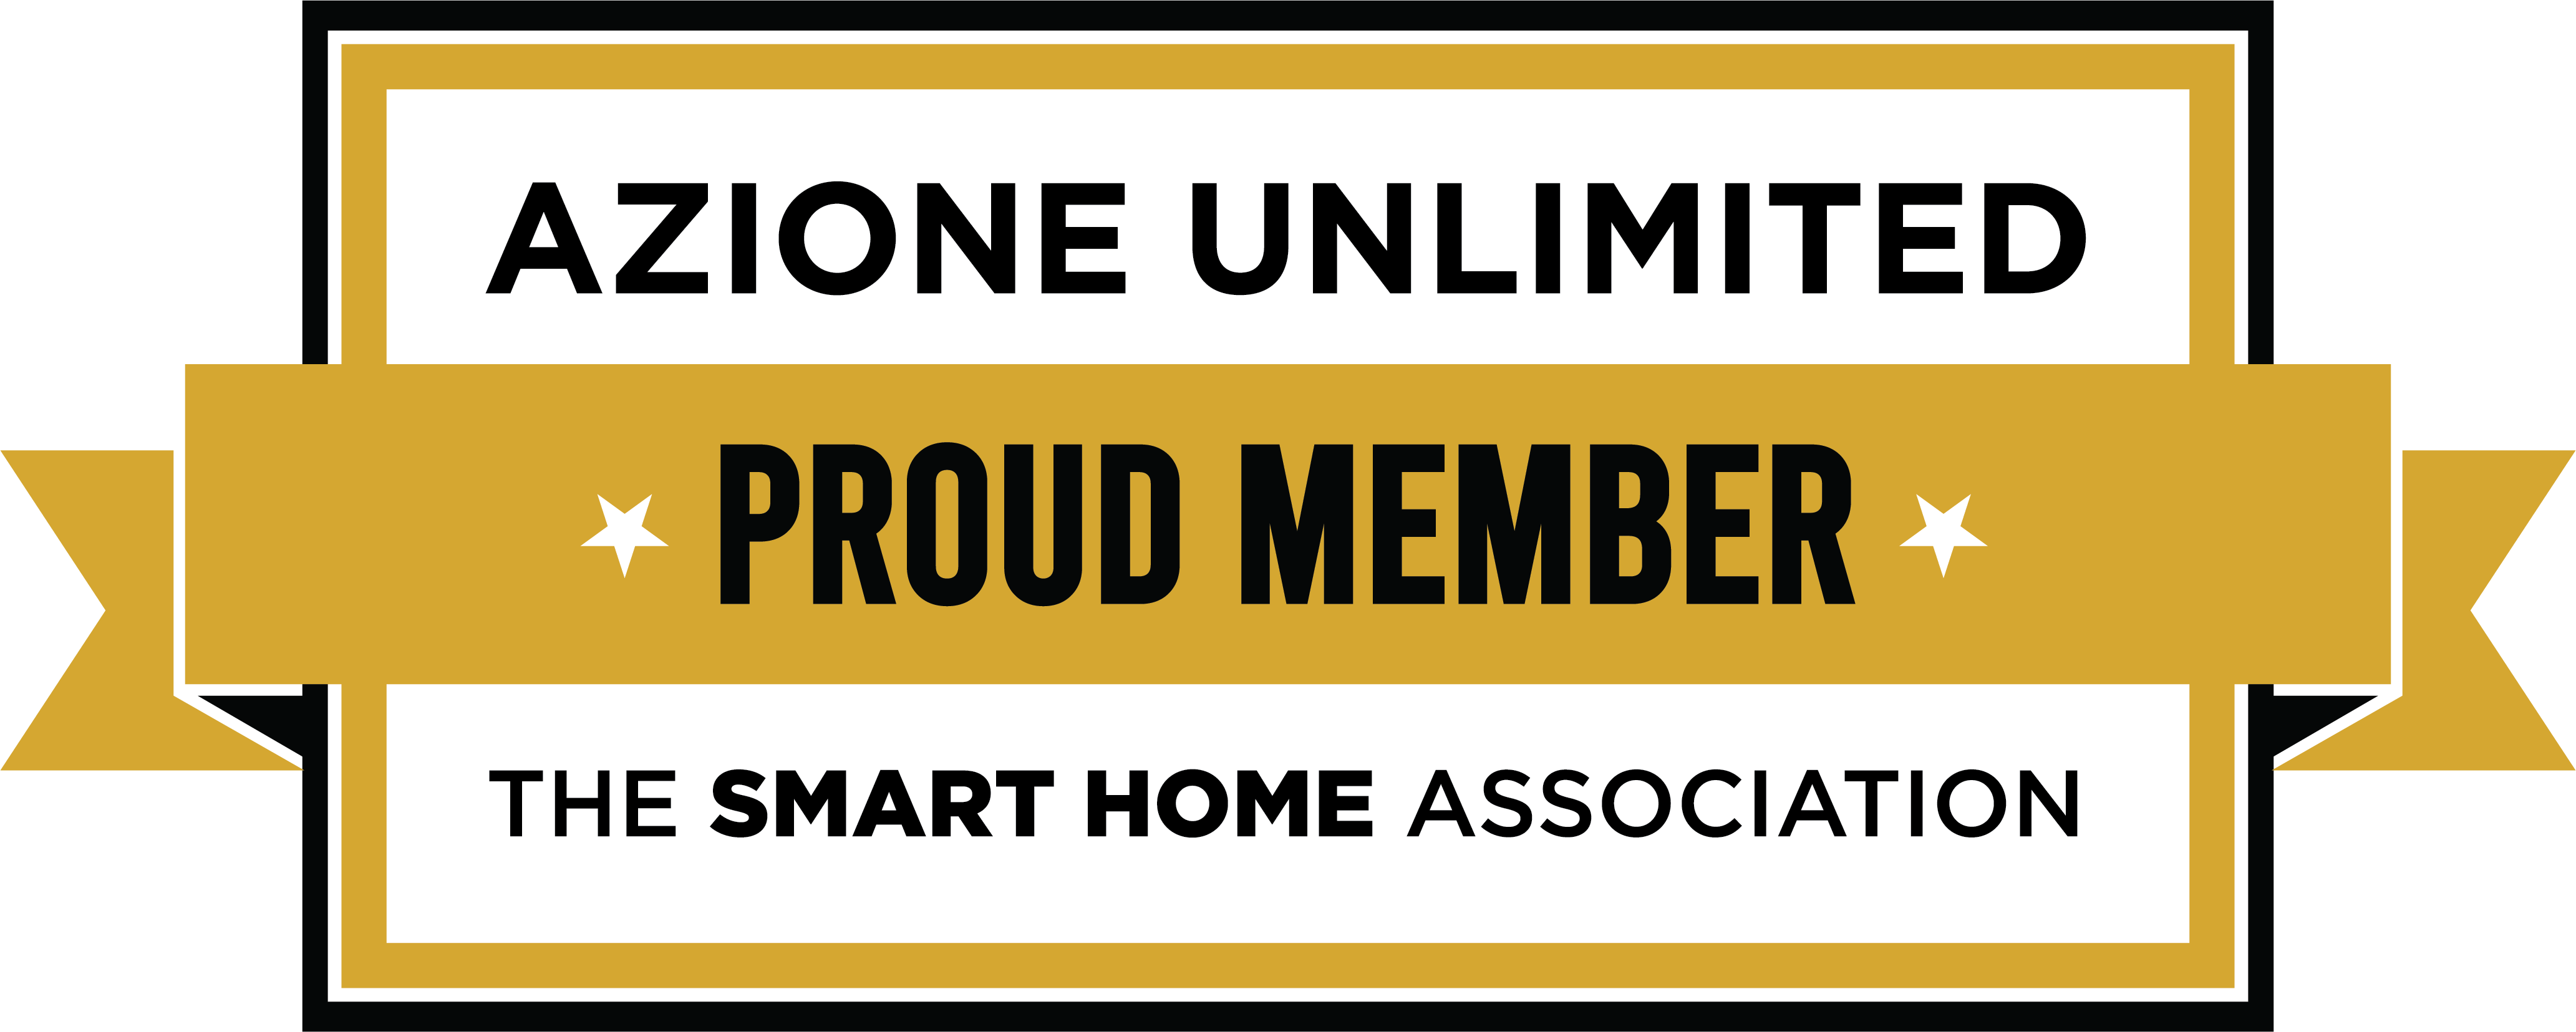 Azione Proud Member Logo Gold Banner